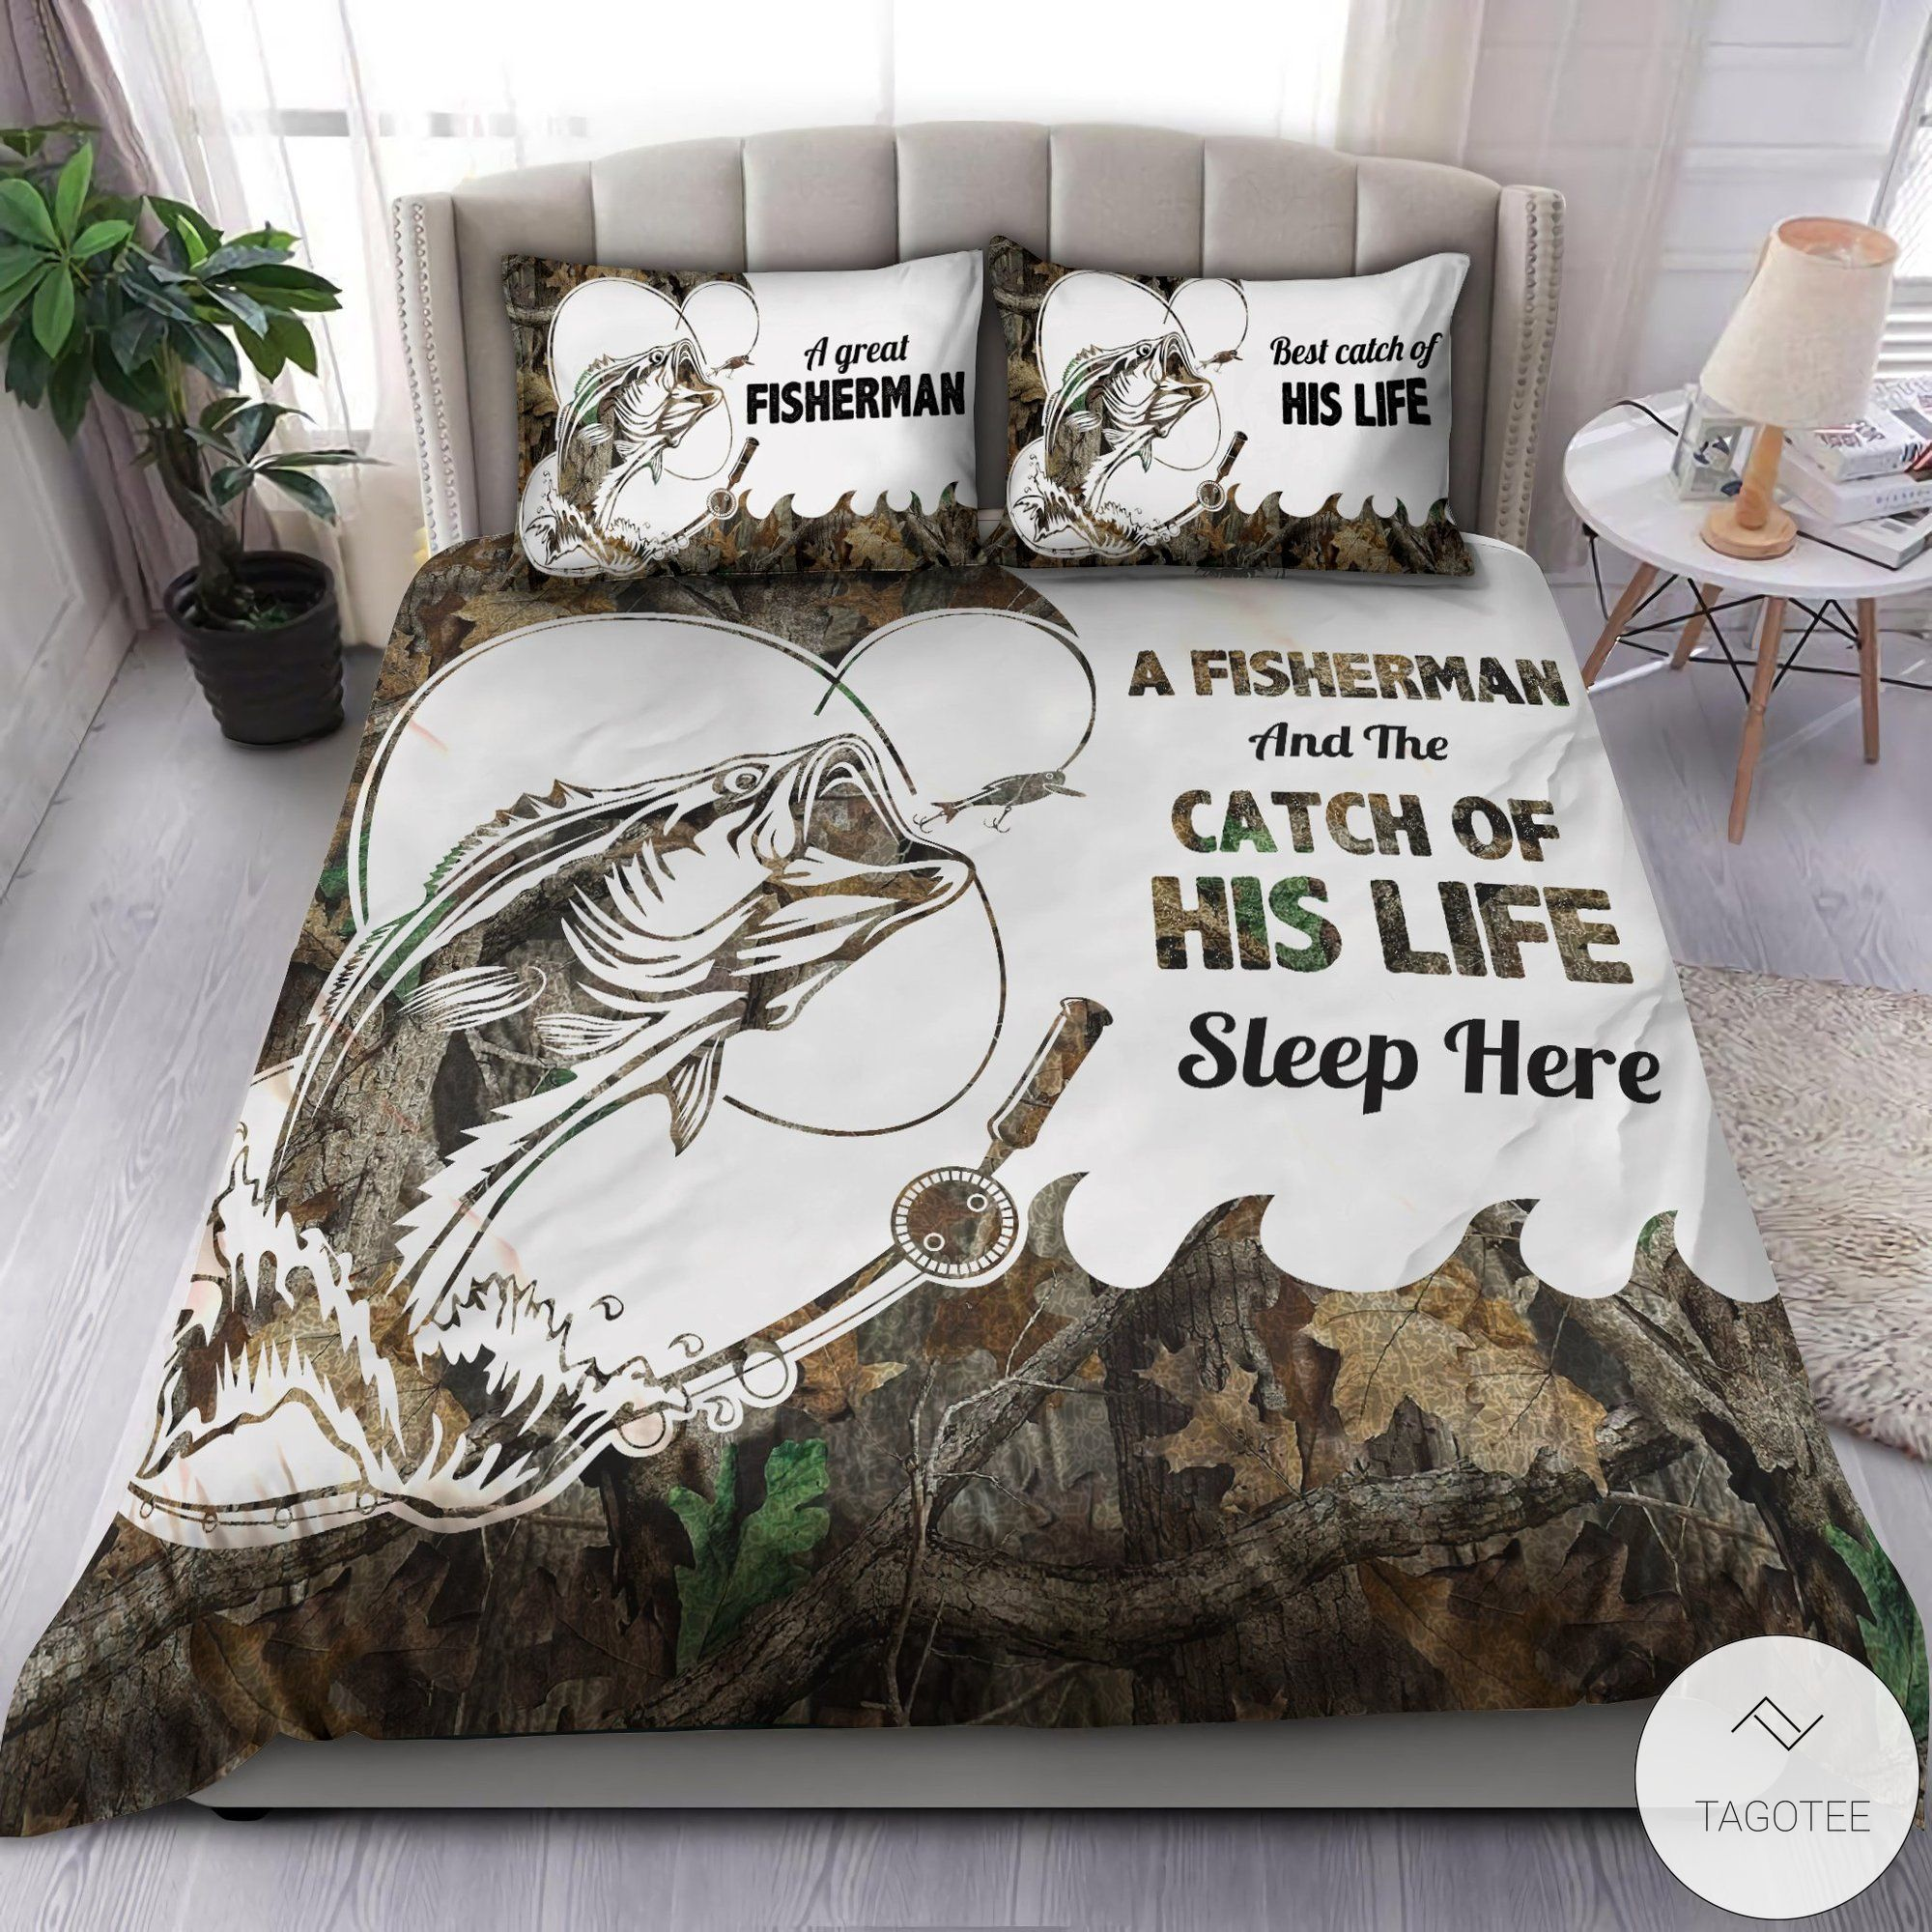 A fisherman and the catch of his life live here sleep here bedding sets